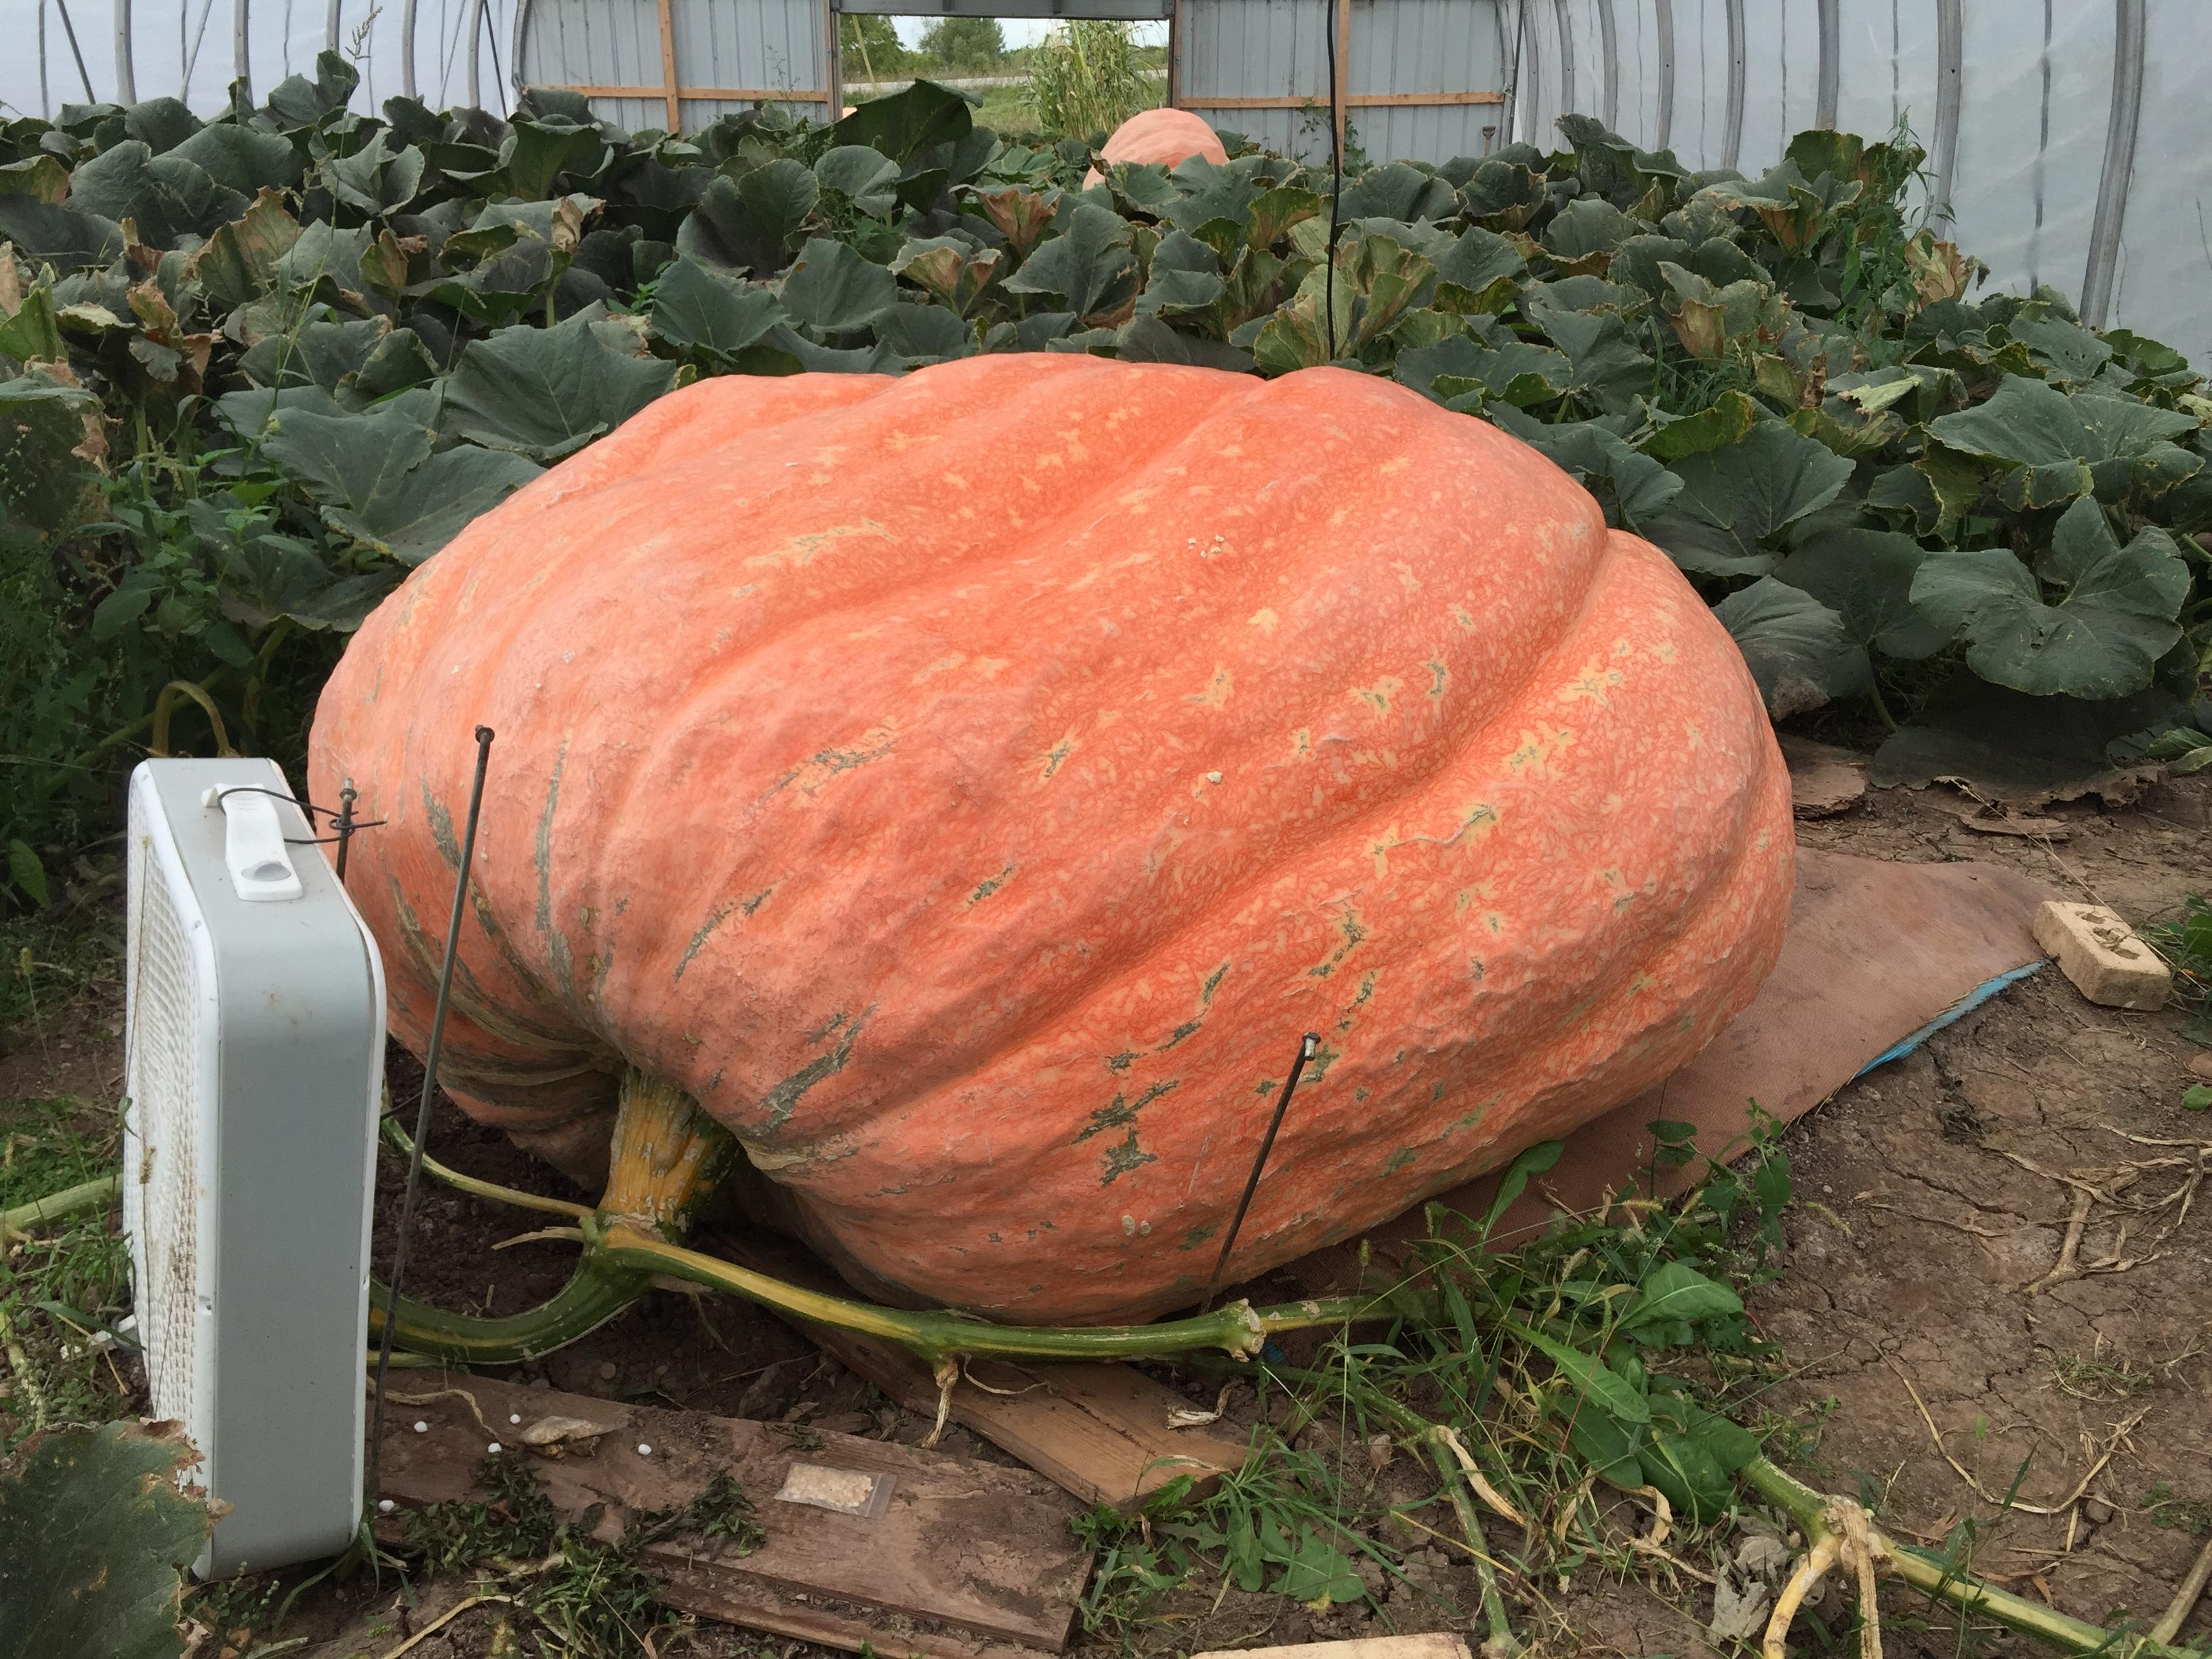 Giant pumpkin in Fond du Lac County estimated to weigh about 1800 pounds, October 5, 2017 (WLUK/Eric Peterson)